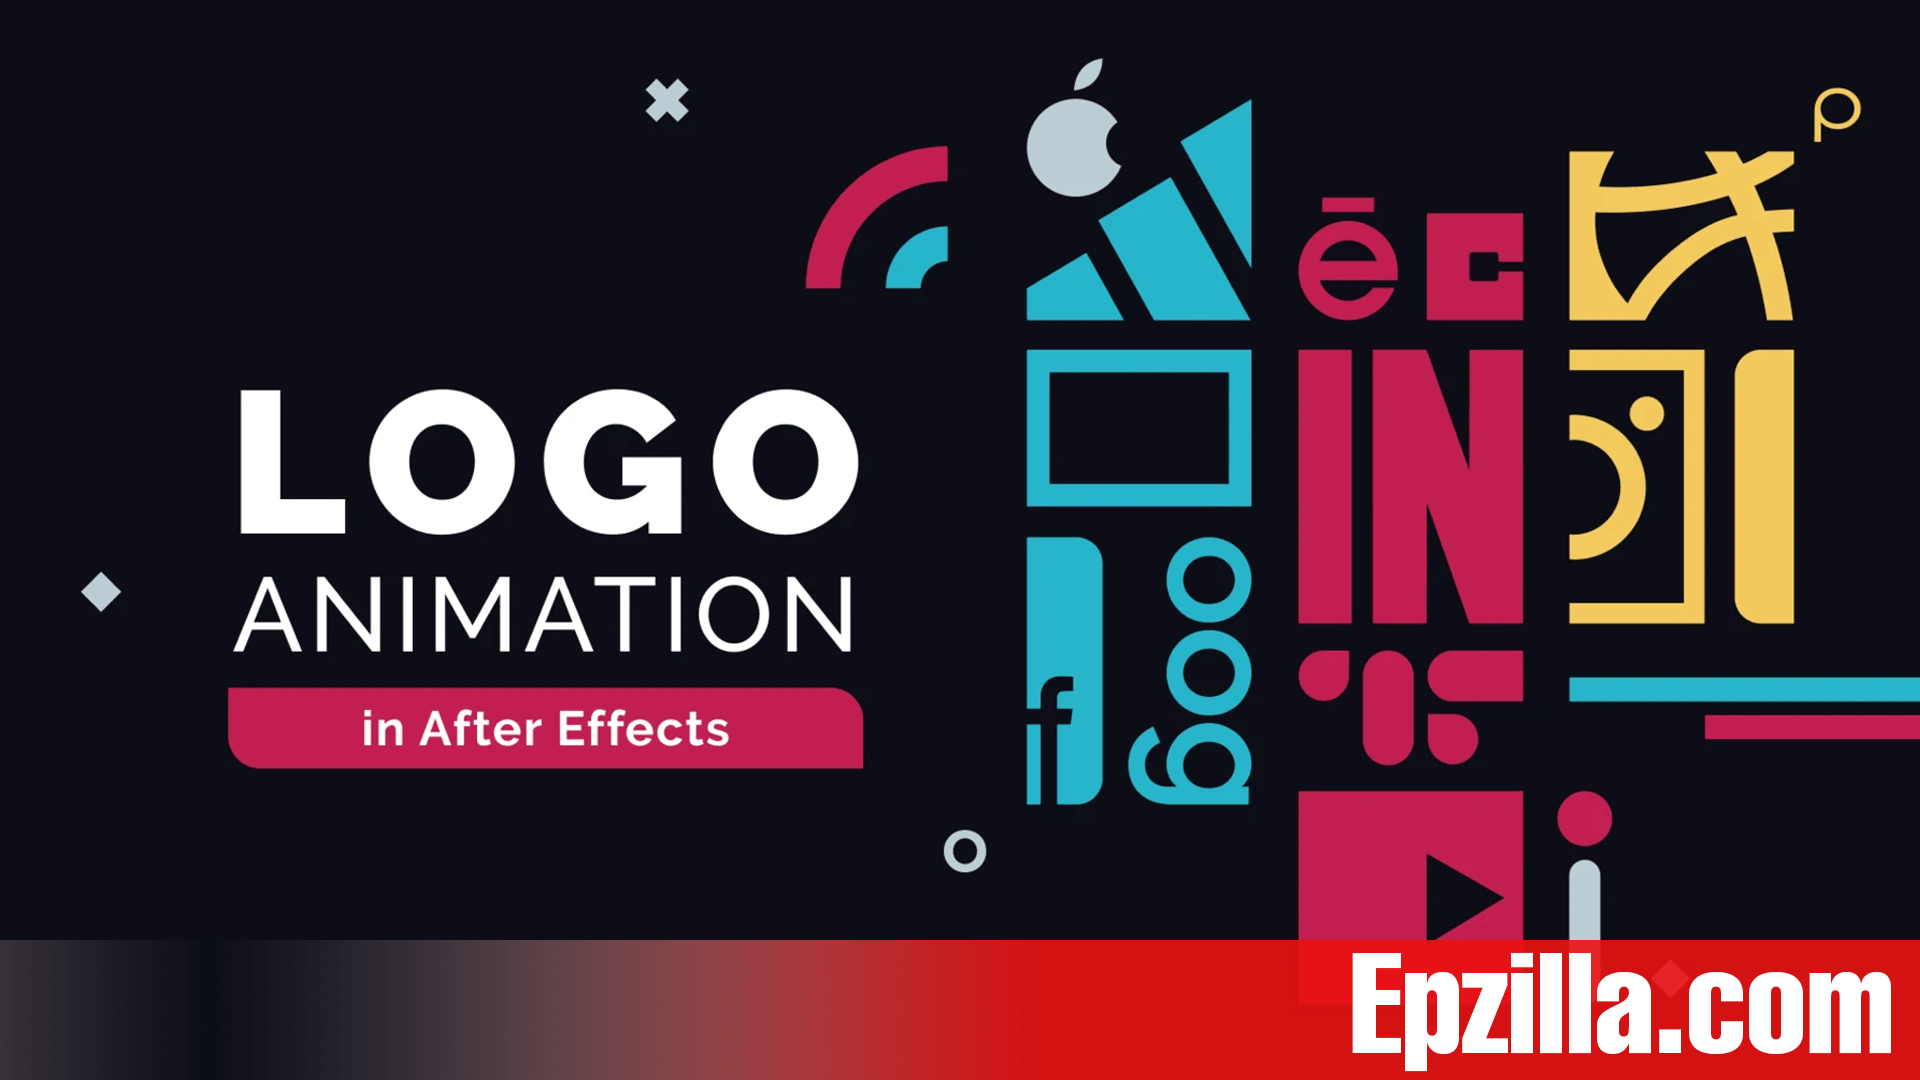 Motion-Design-School-Logo-Animation-in-After-Effects-Full-Course-Free-Download-Epzilla.com